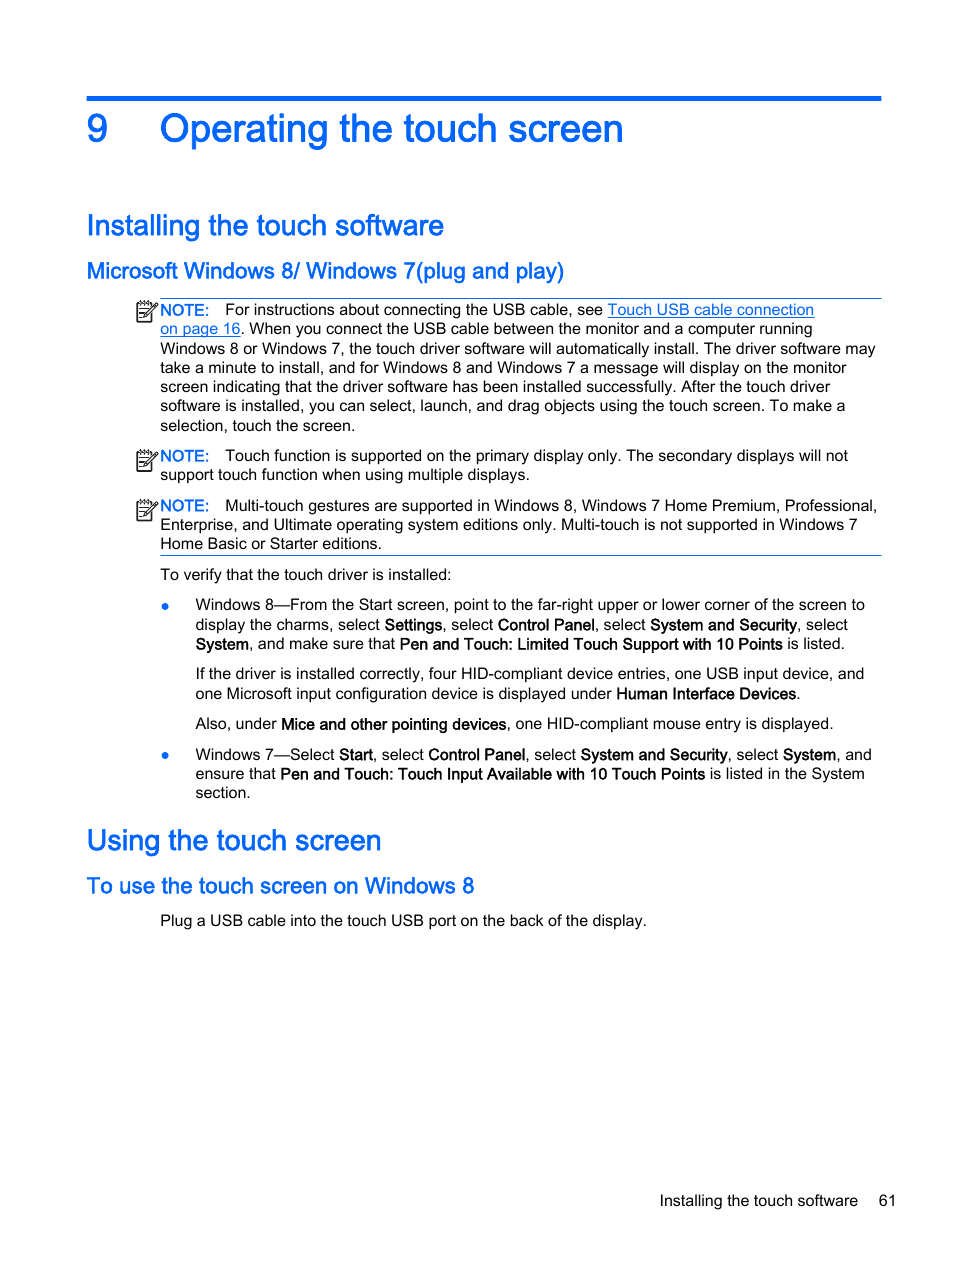 How To Install Touch Screen Driver Windows 7 Touch screen